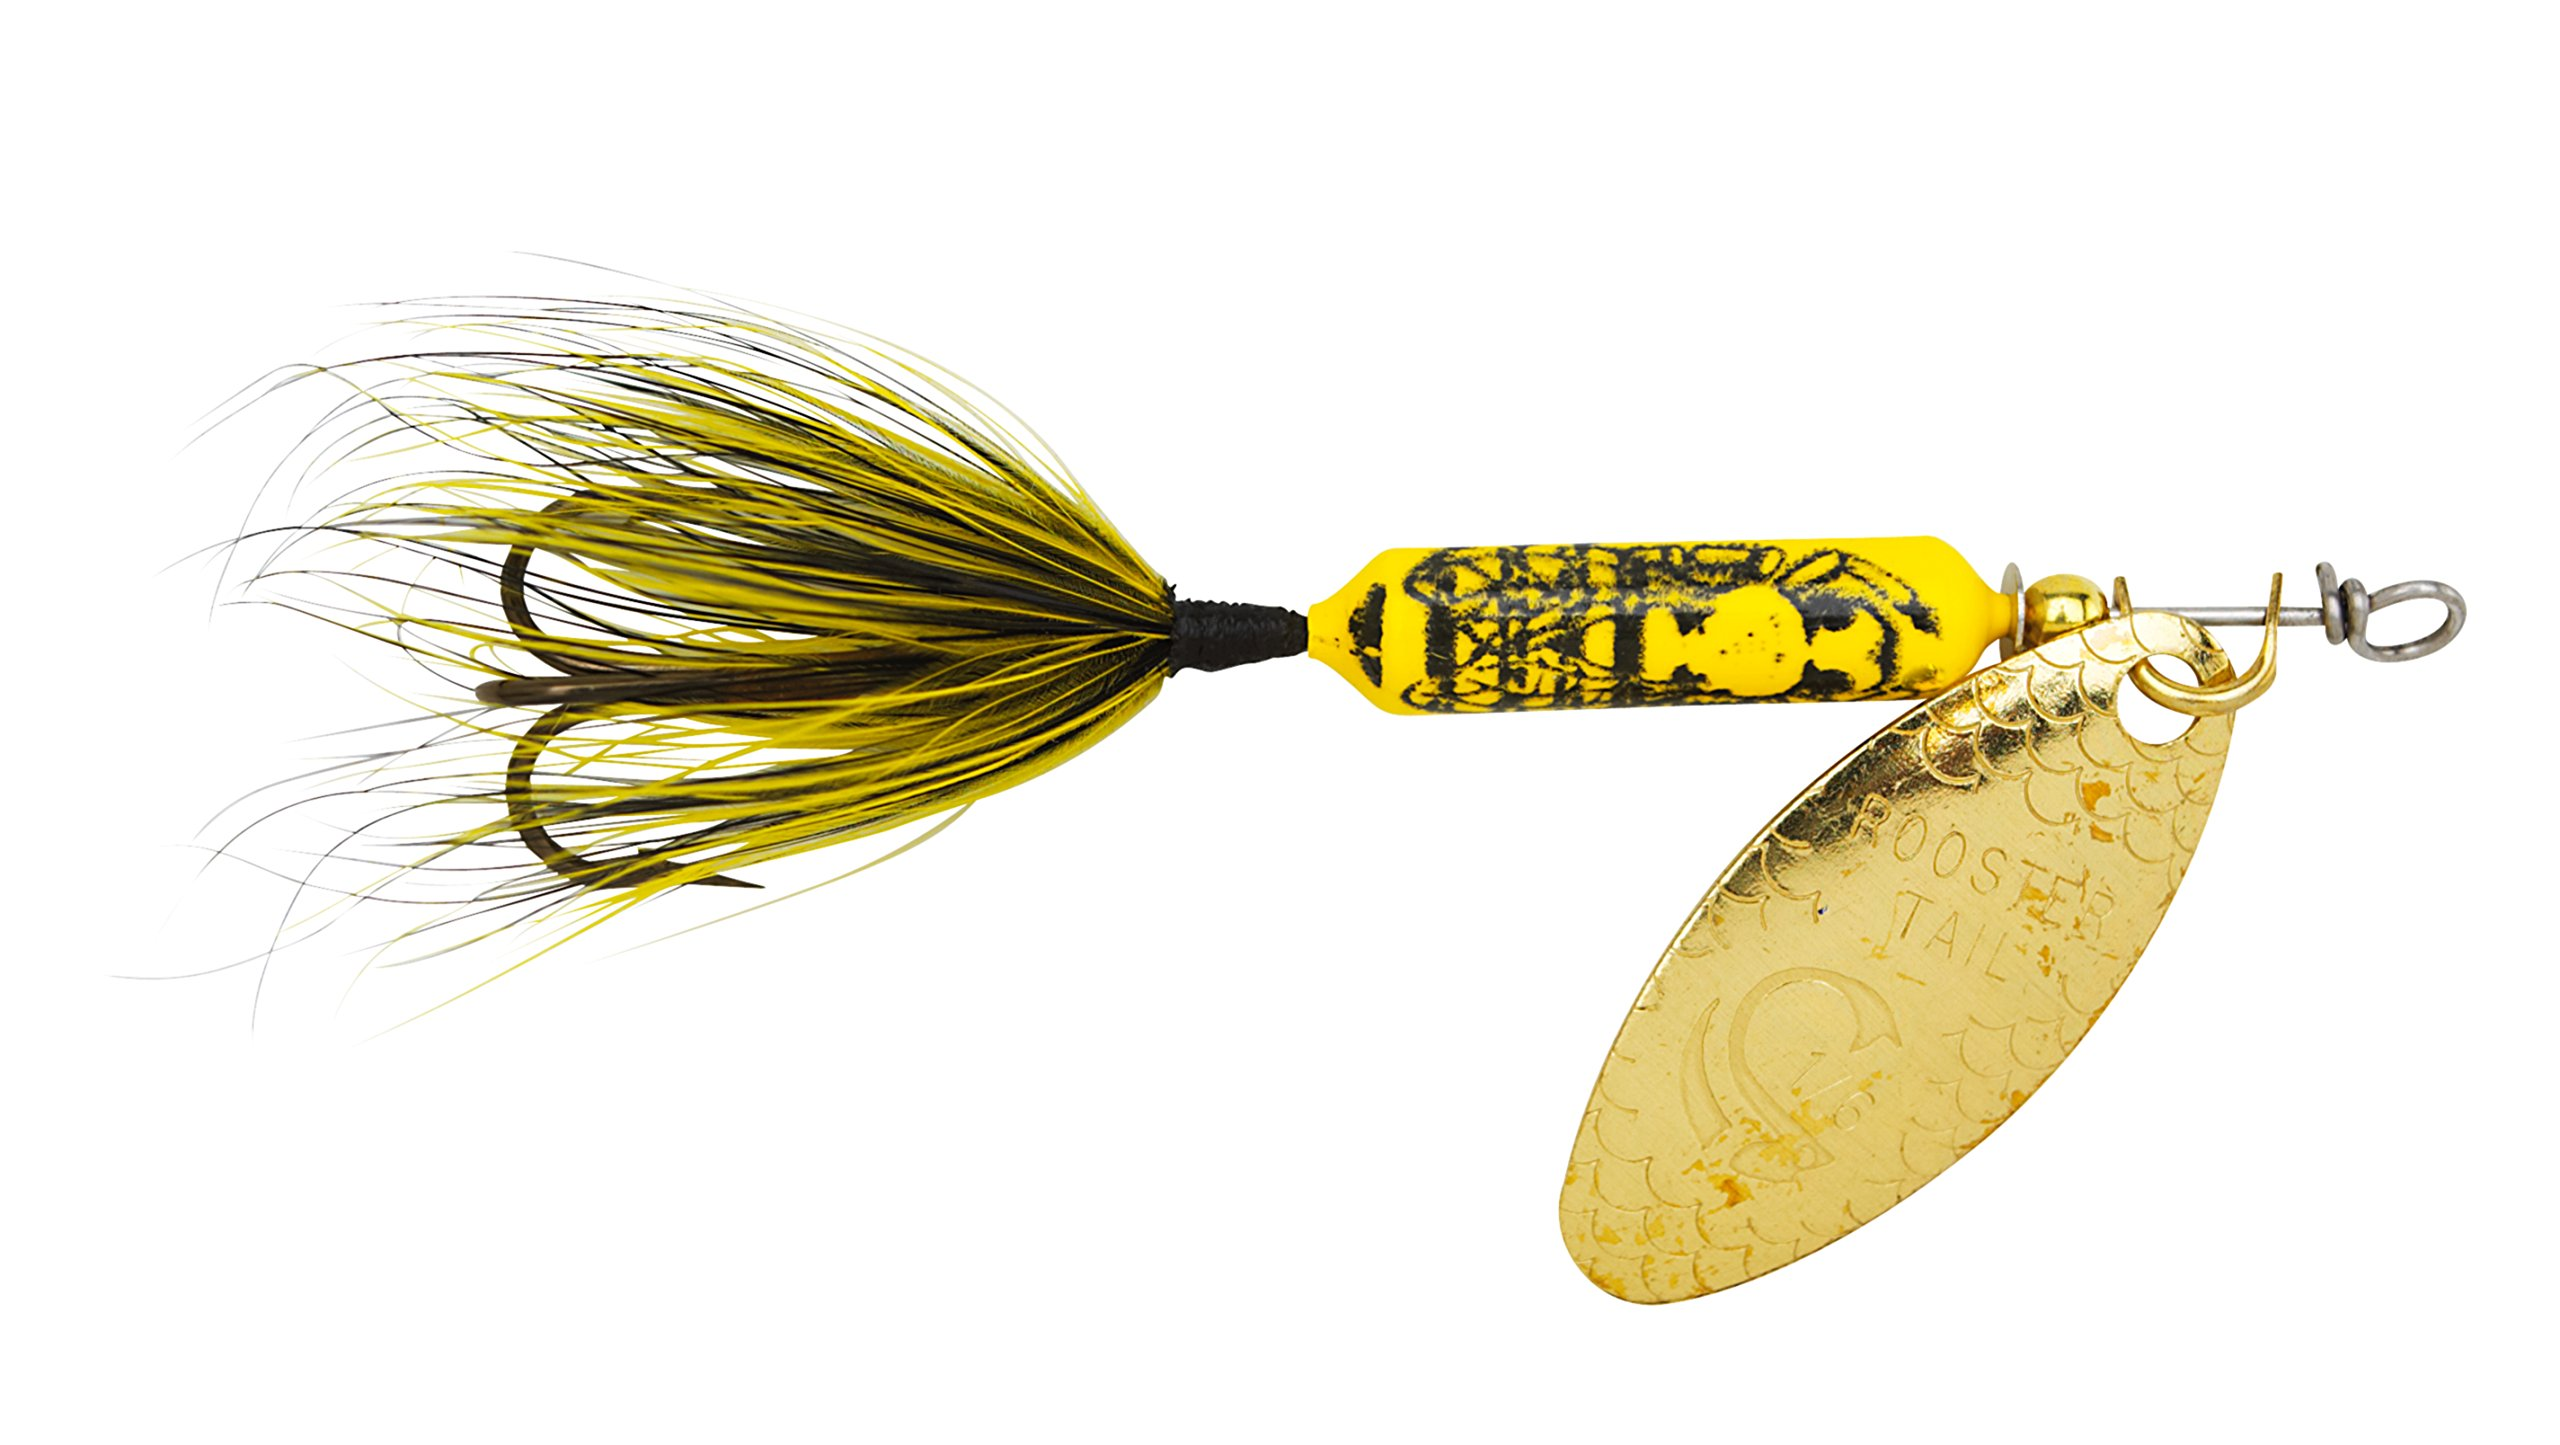 Yakima Bait Wordens Original Rooster Tail 1/16oz Spinner Lure, 3 Pack- Bumblebee by Yakima Bait